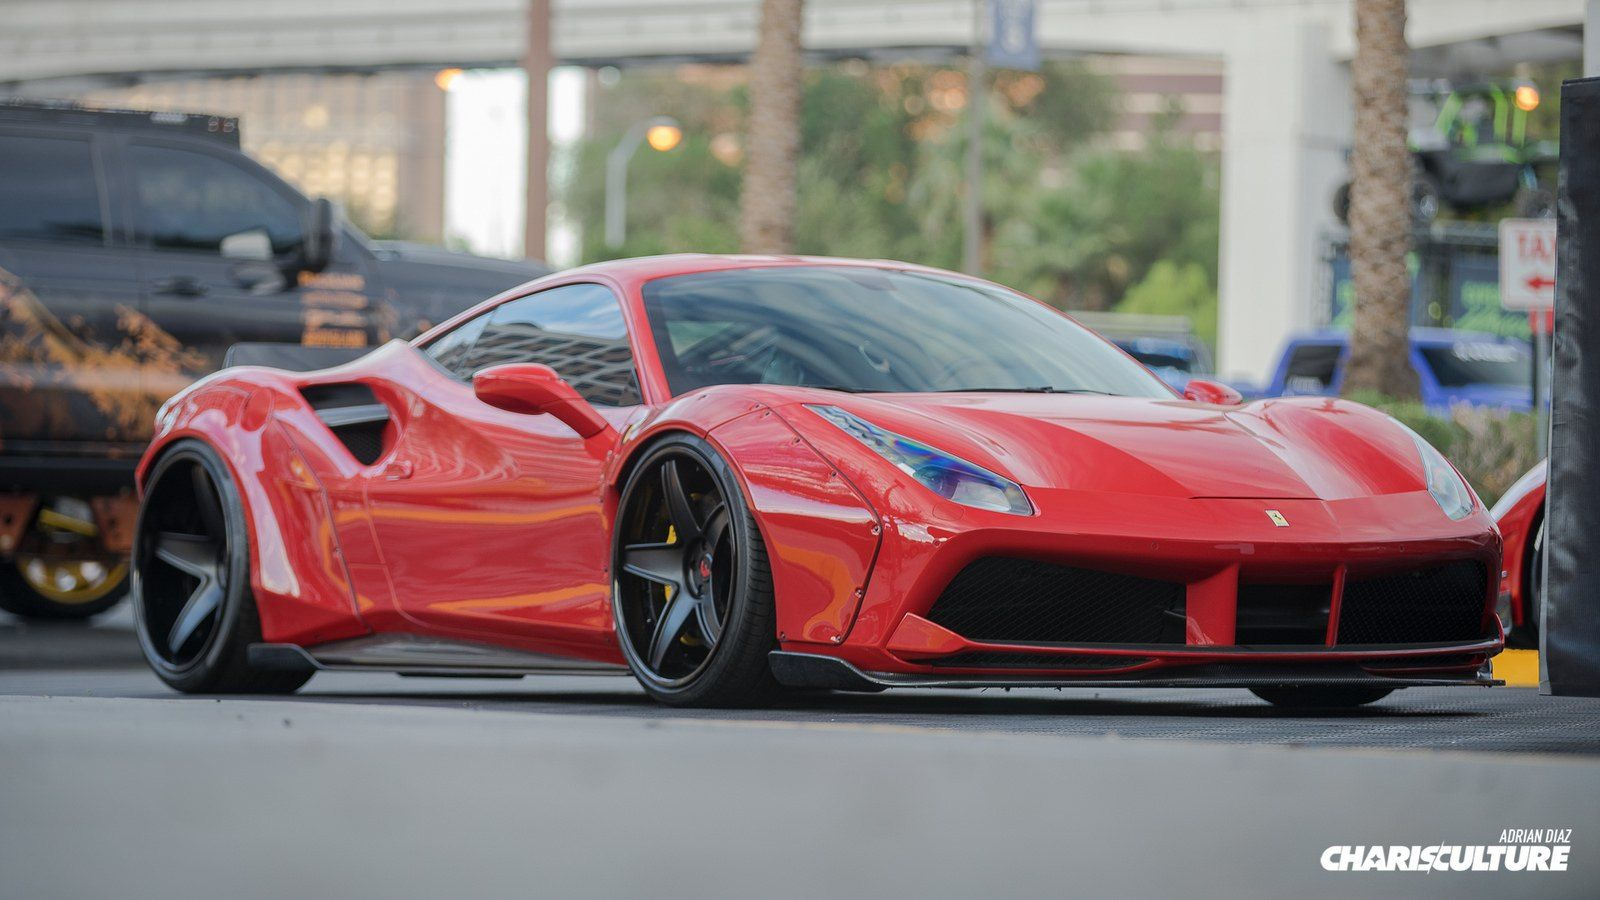 Eye Catching Red Ferrari 488 With Carbon Fiber Taillight Guards Ferrari 488 Ferrari Carbon Fiber